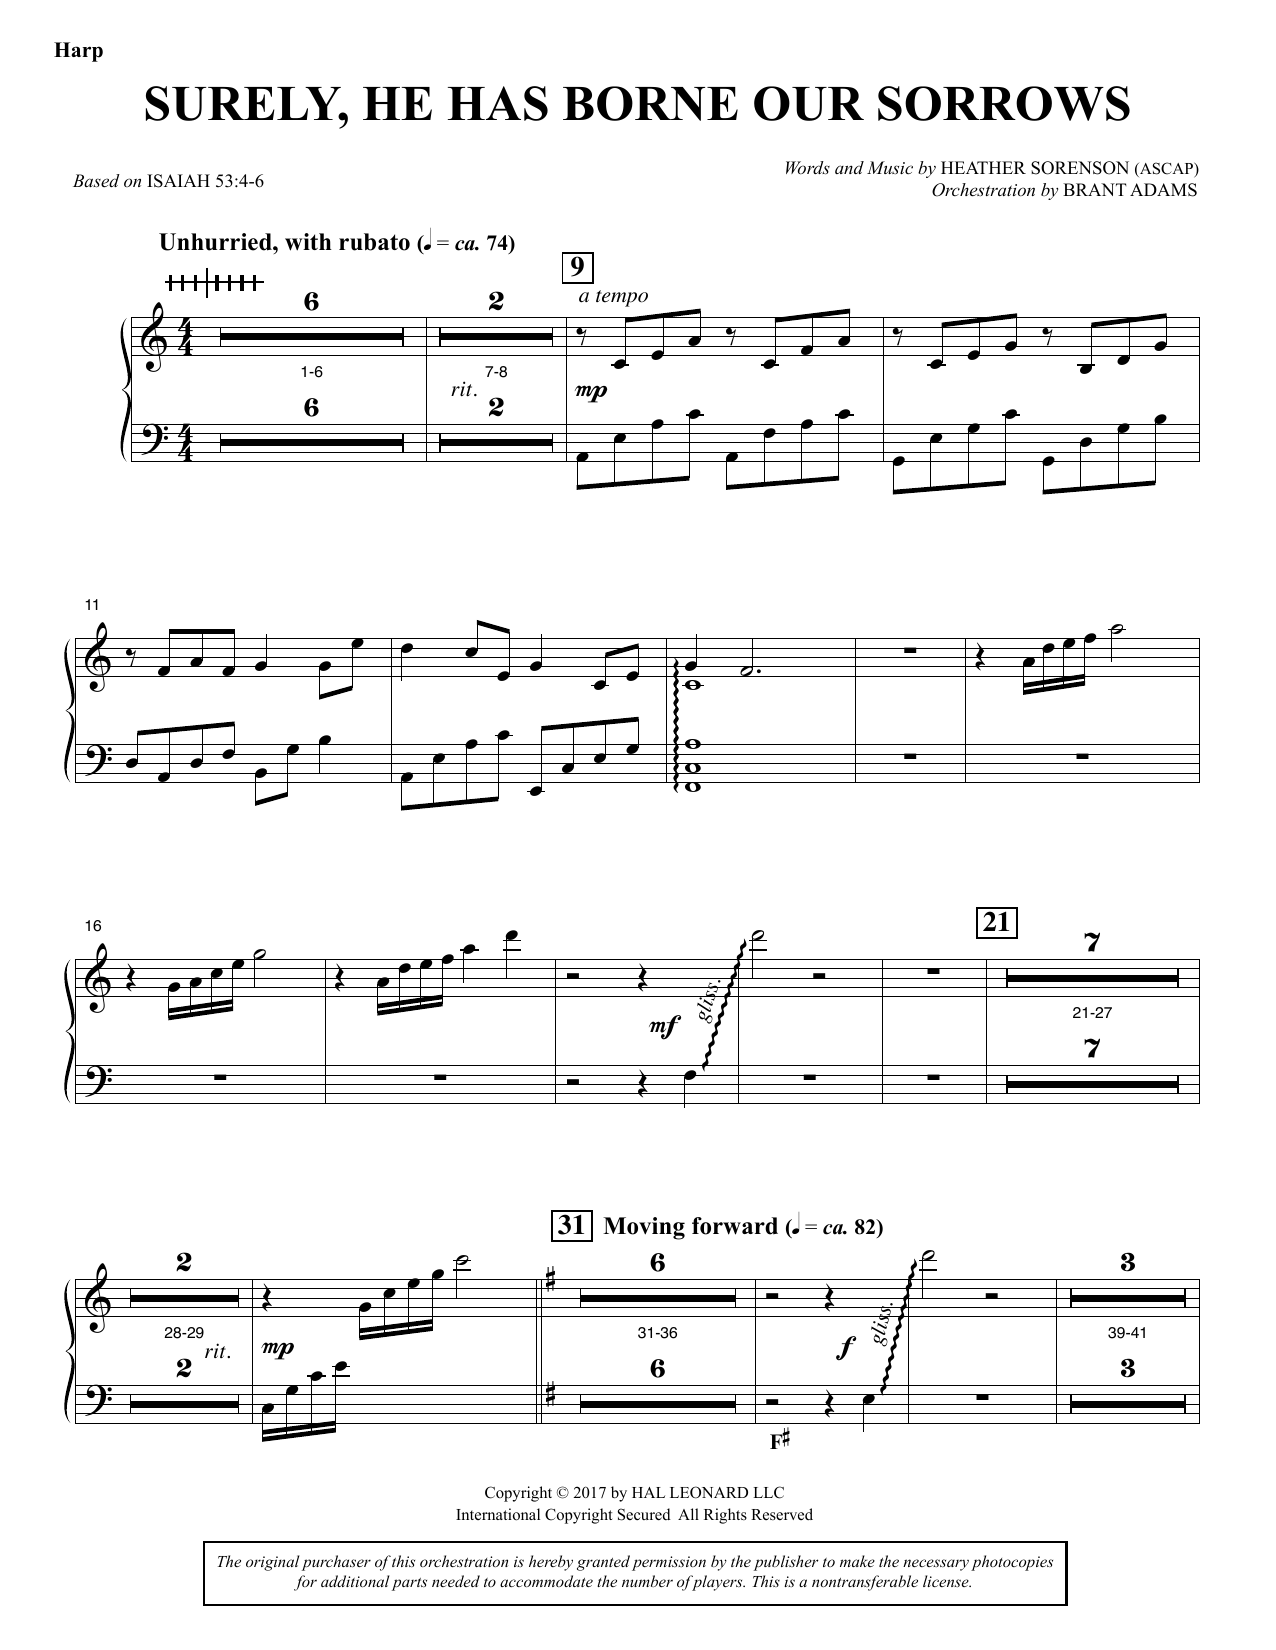 Heather Sorenson Surely, He Has Borne Our Sorrows - Harp sheet music notes and chords. Download Printable PDF.